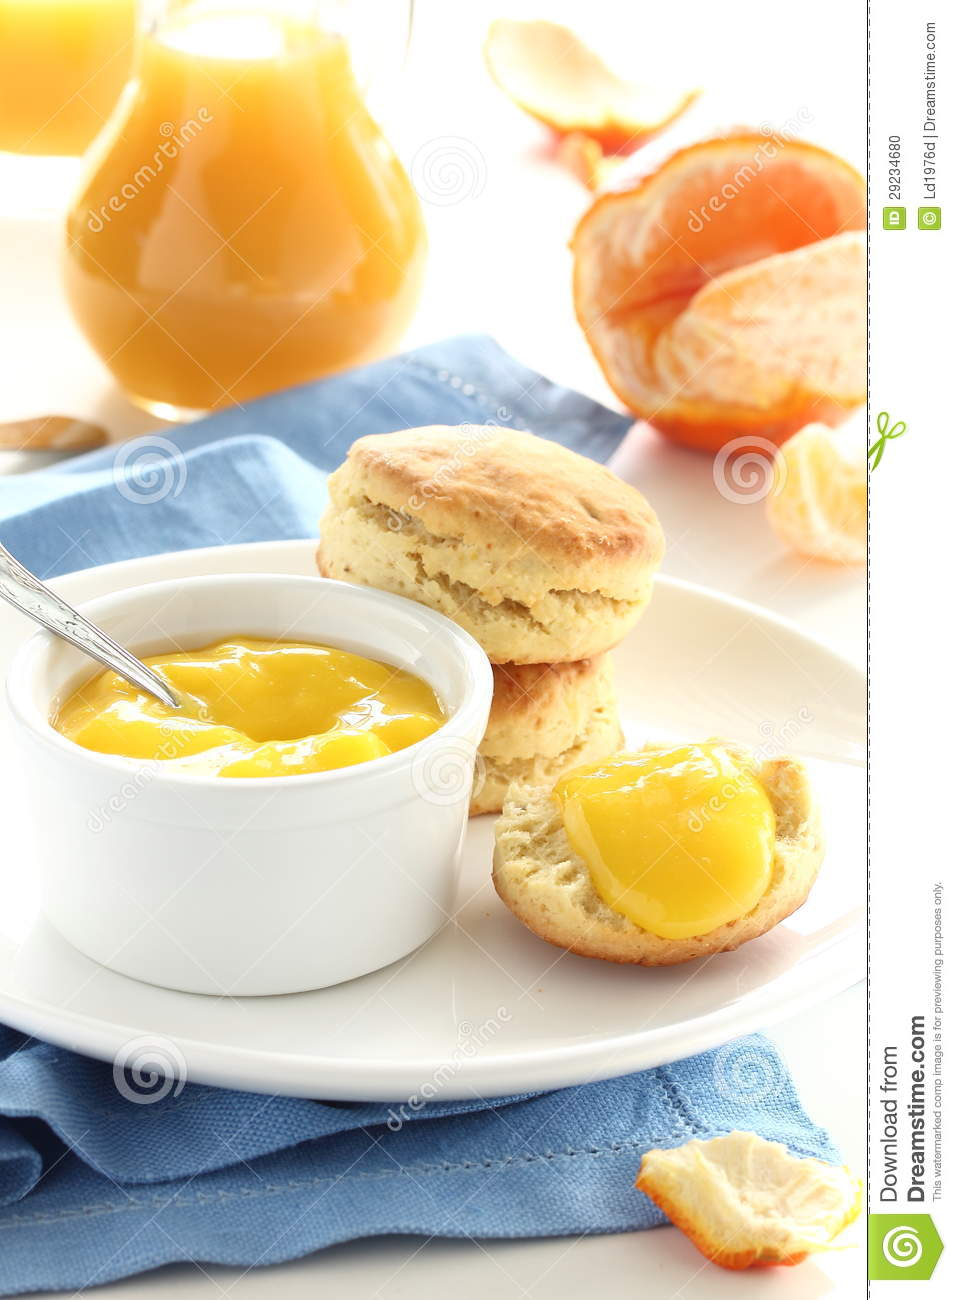 Download Bolos Com Curdo Alaranjado. Foto de Stock - Imagem de breakfast, kurd: 29234680